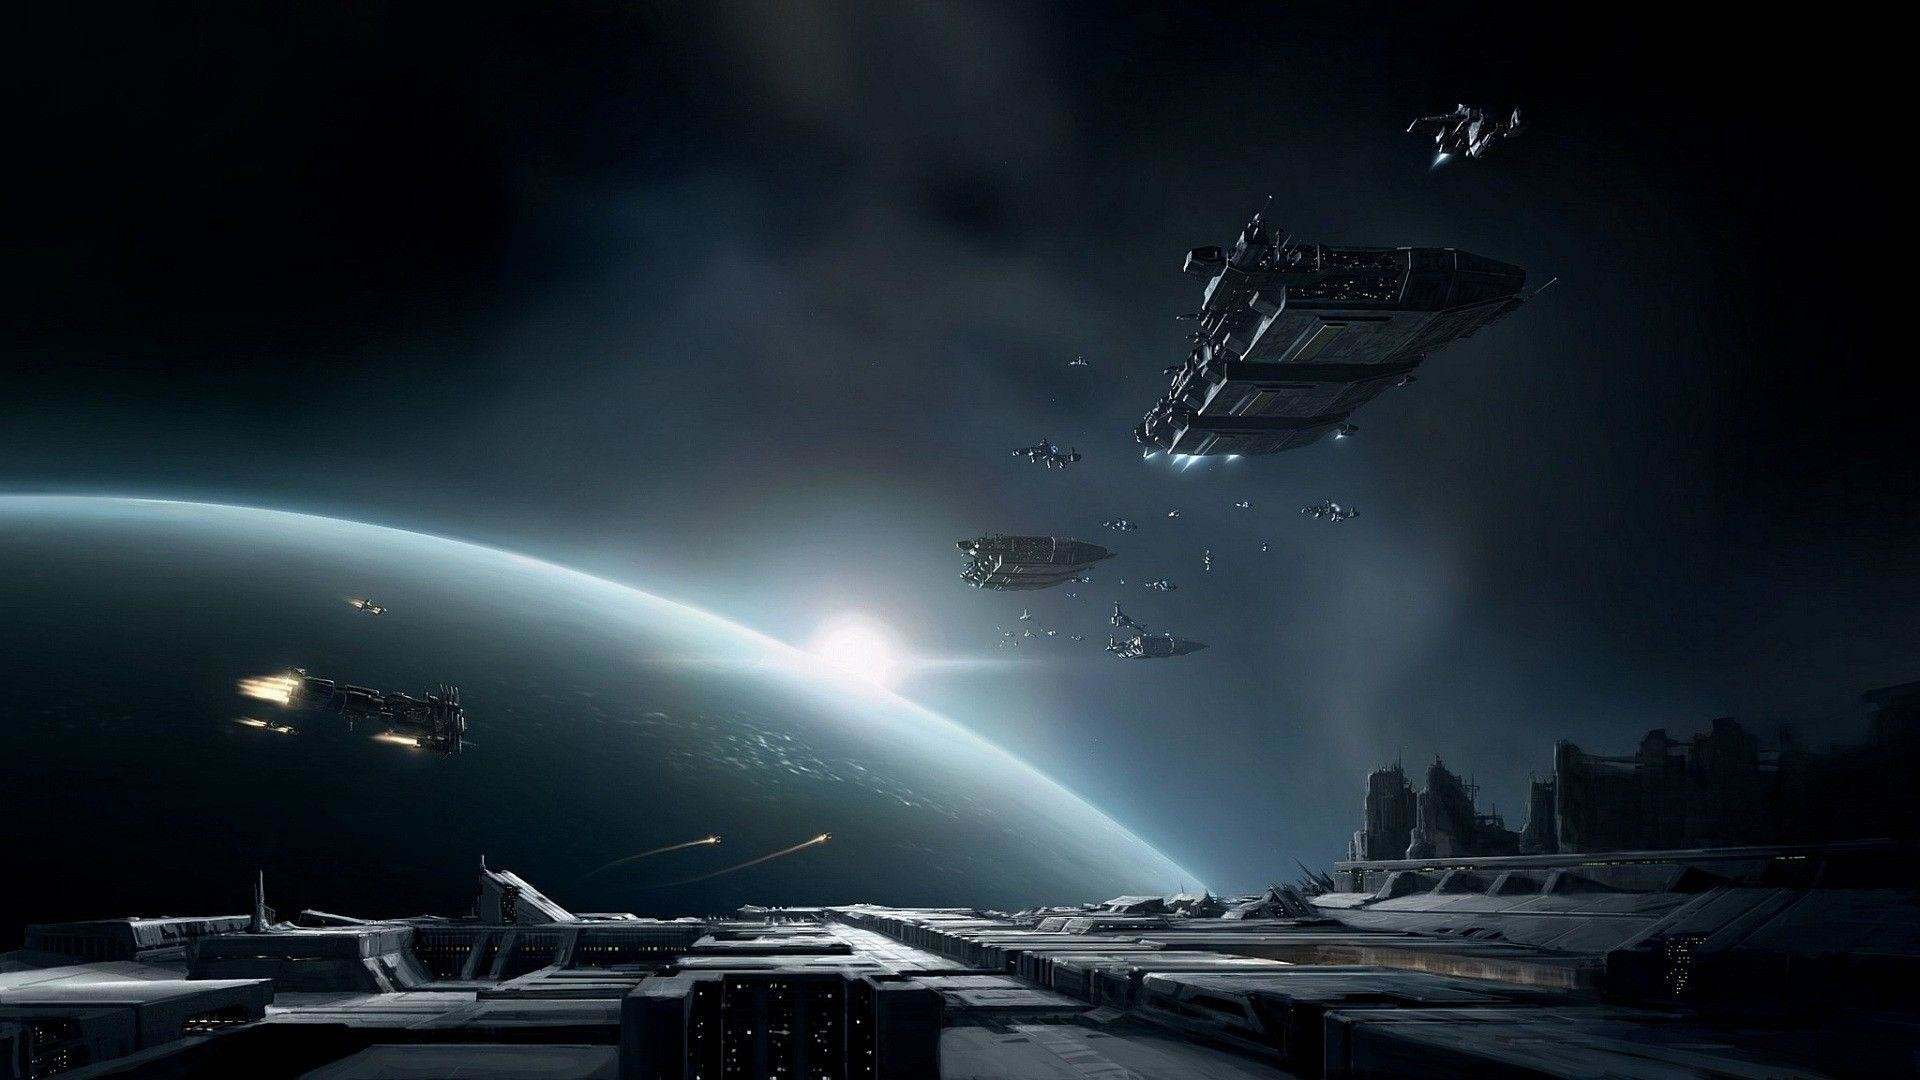 wallpaper.wiki-Free-Eve-Online-Backgrounds-PIC-WPB002844